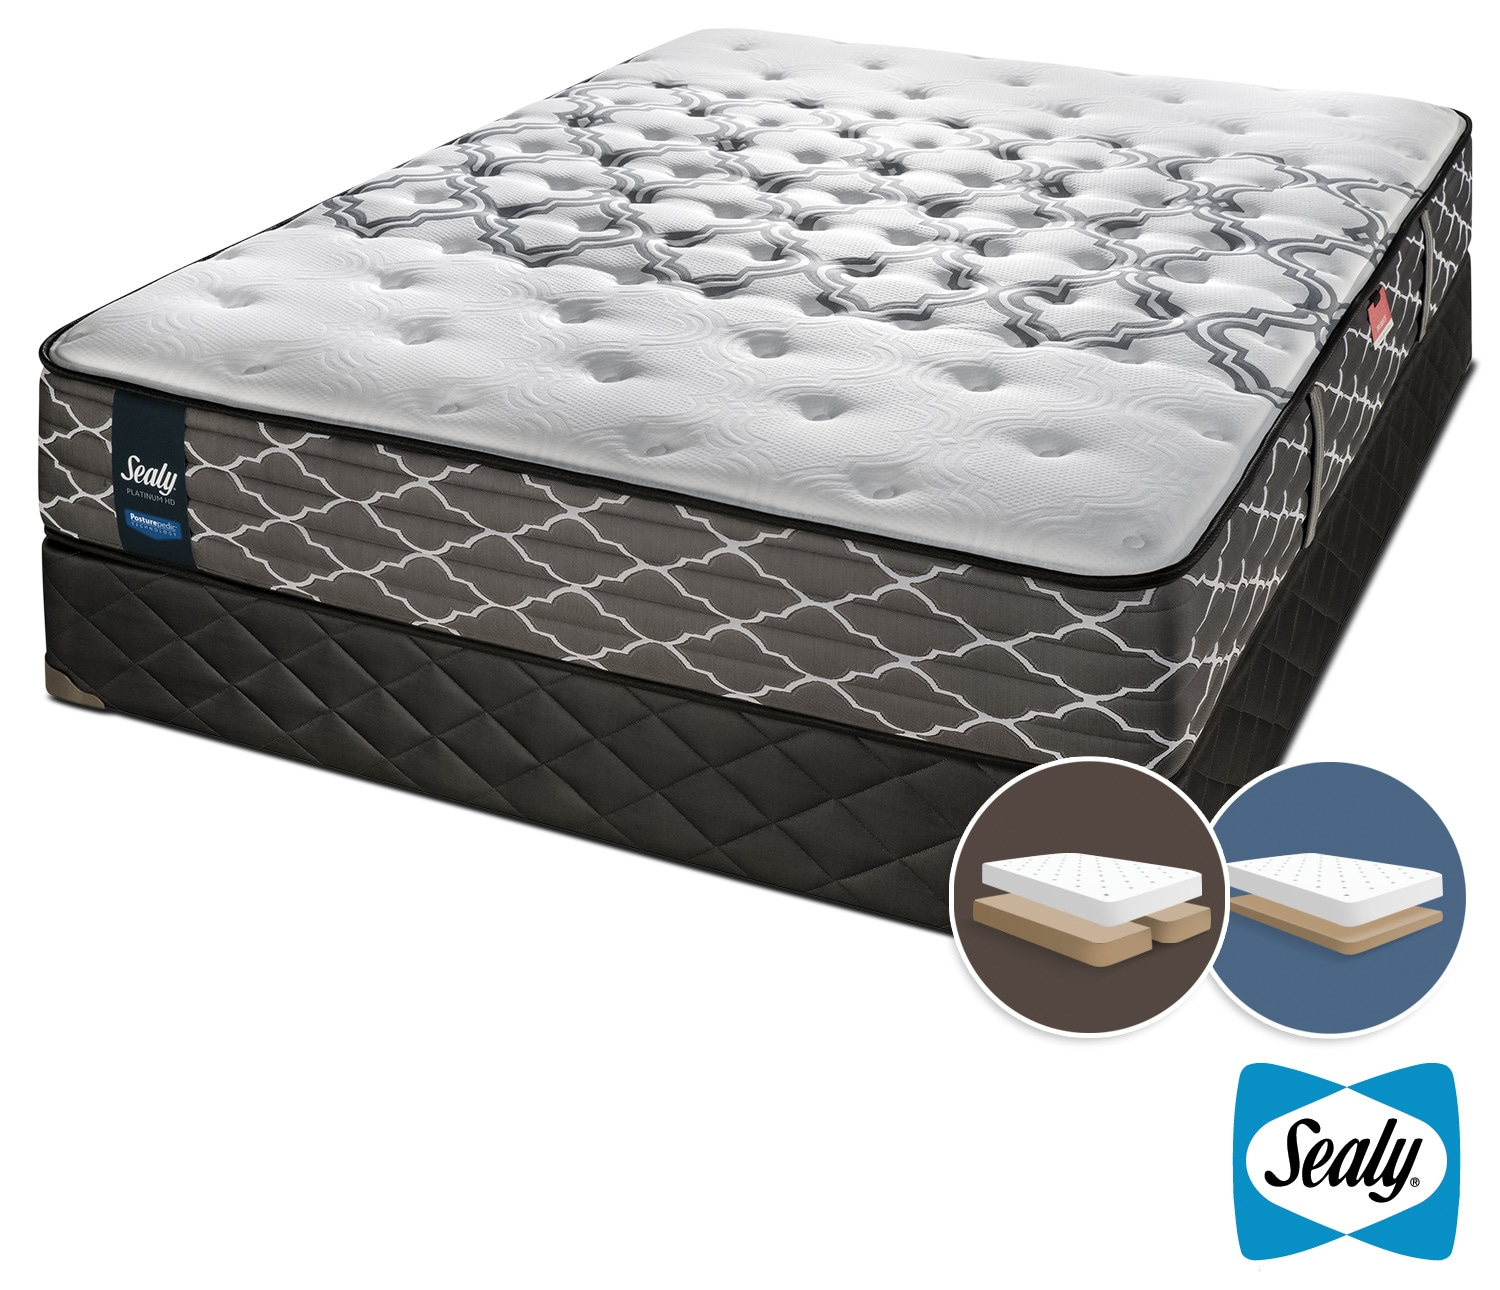 Mattresses and Bedding - Sealy Late Night Hybrid Extra Firm King Mattress and Low-Profile Split Boxspring Set